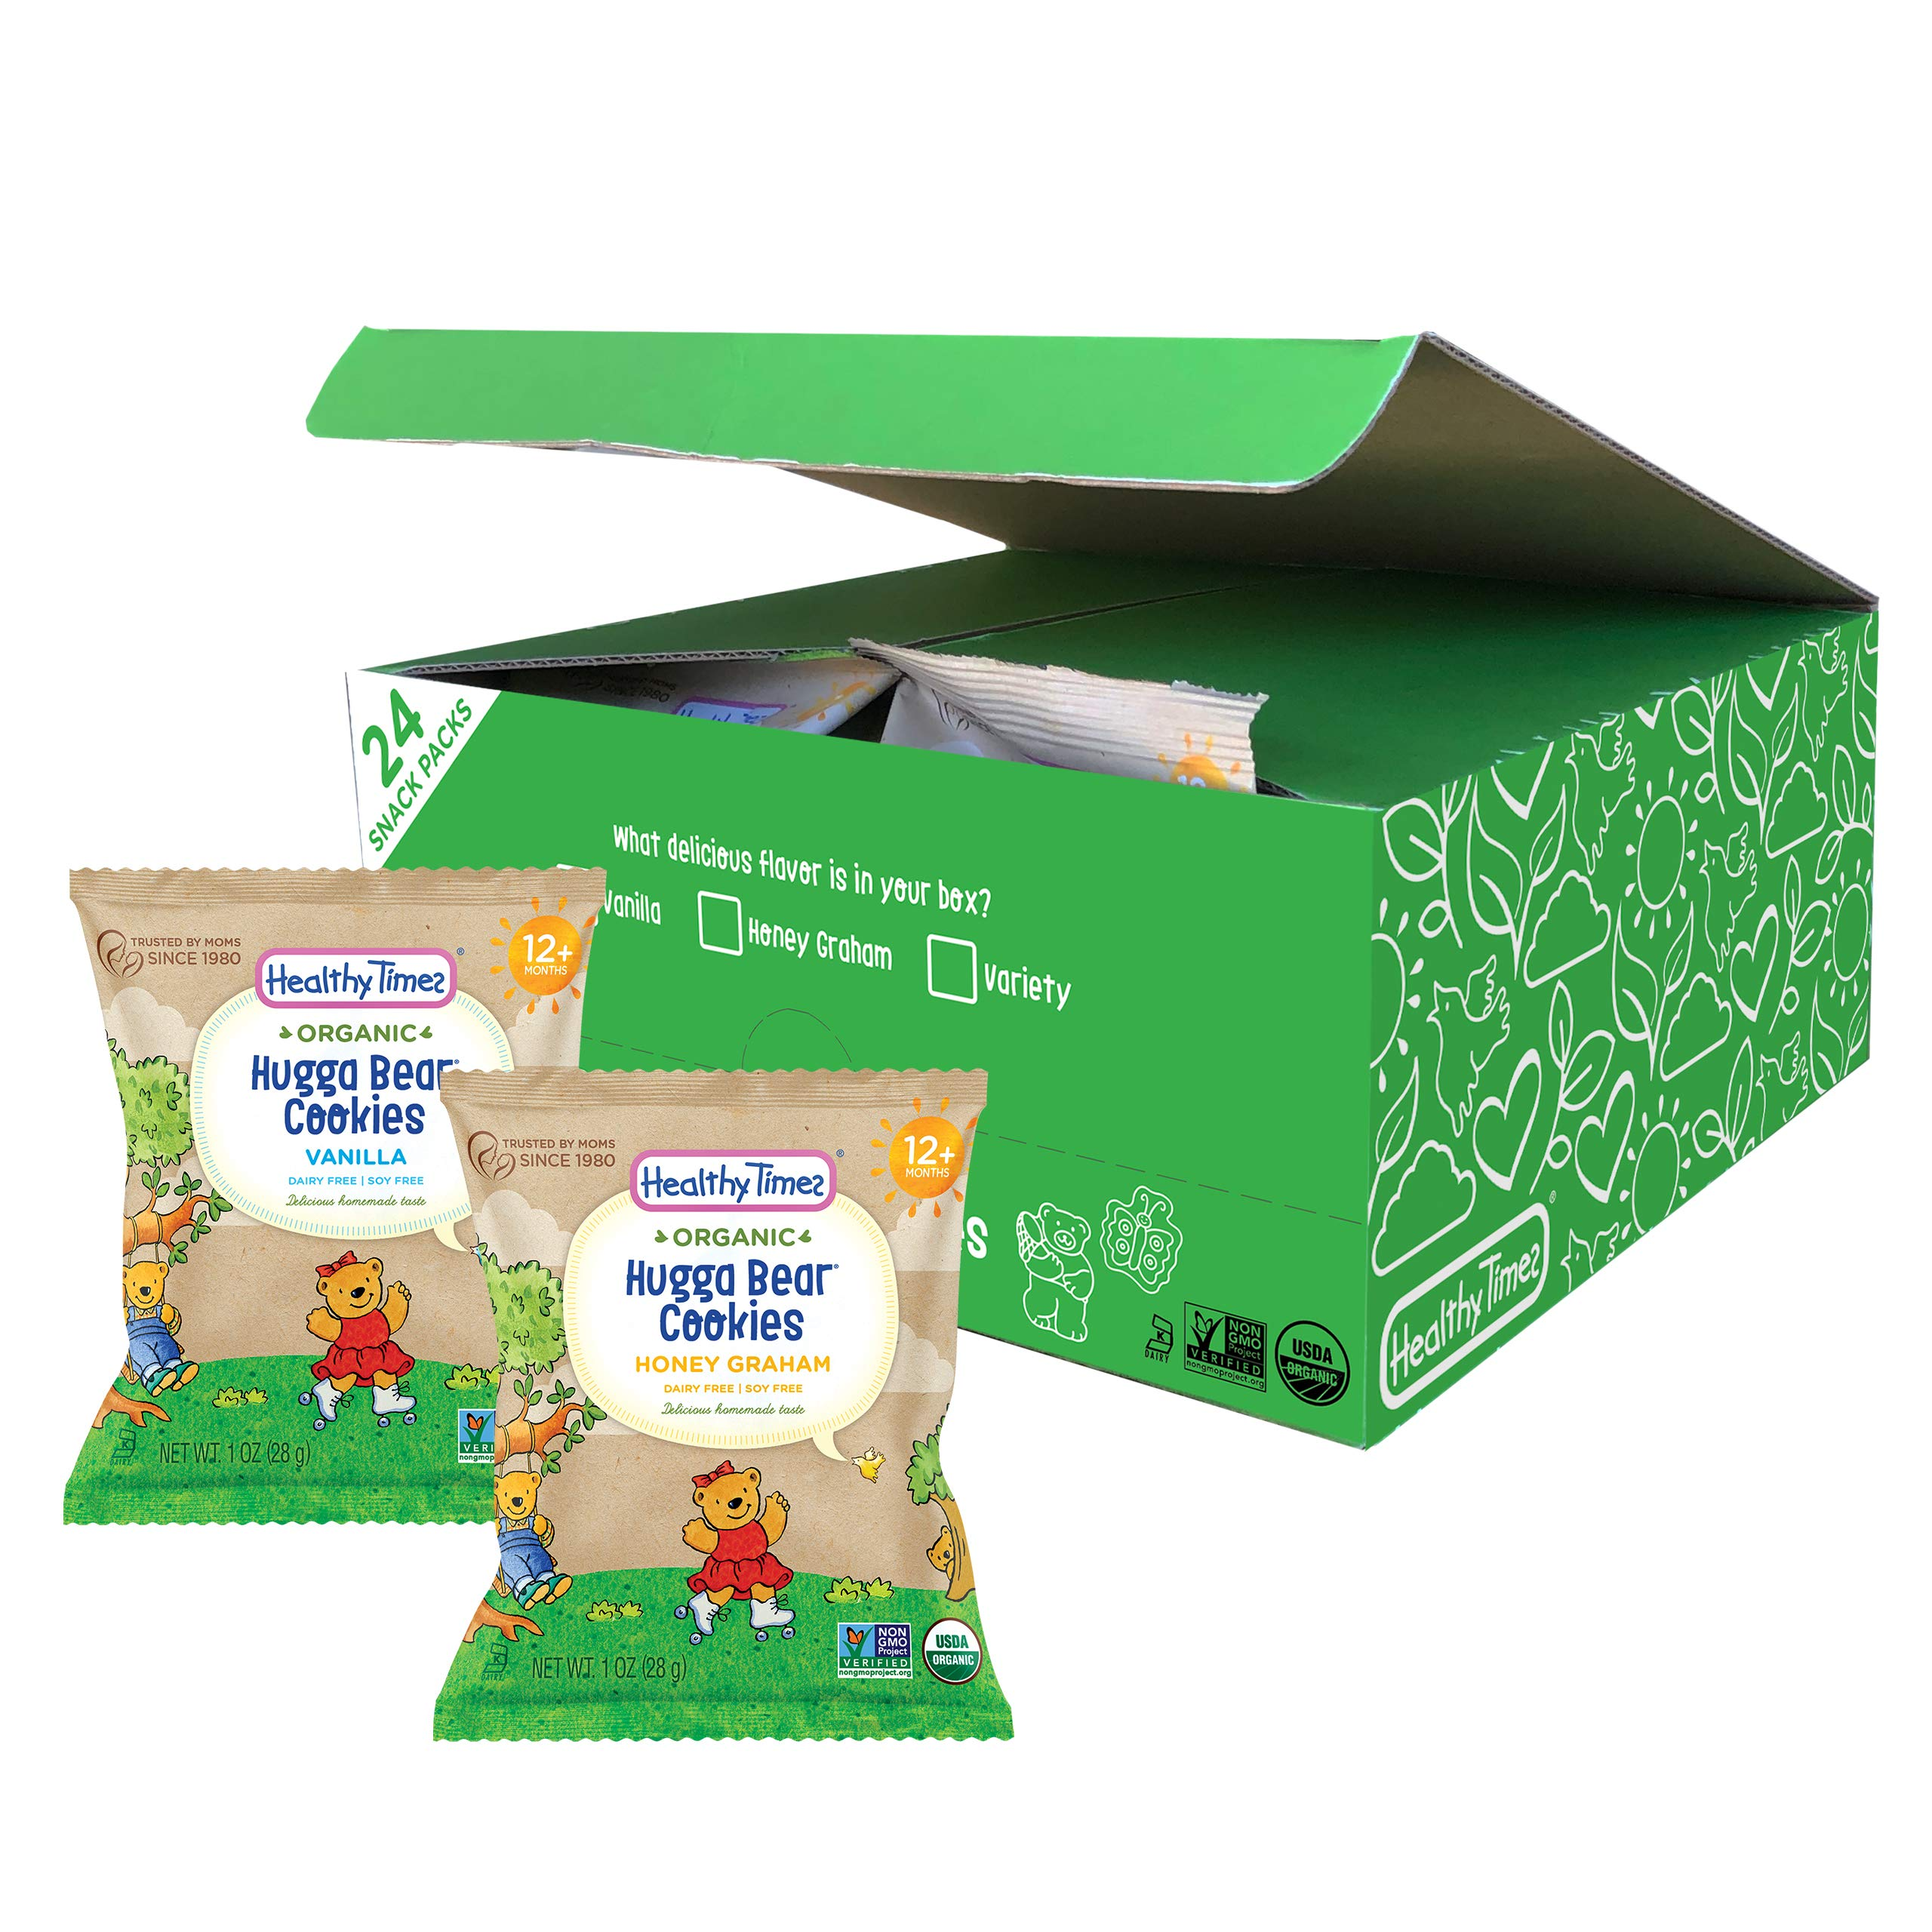 Healthy Times Organic Hugga Bear Snack Pack Cookies for Kids, Vanilla & Honey Graham Variety Pack | For Toddlers, 12 Months and Older | 1 Oz. Bag, 24 Count by Healthy Times